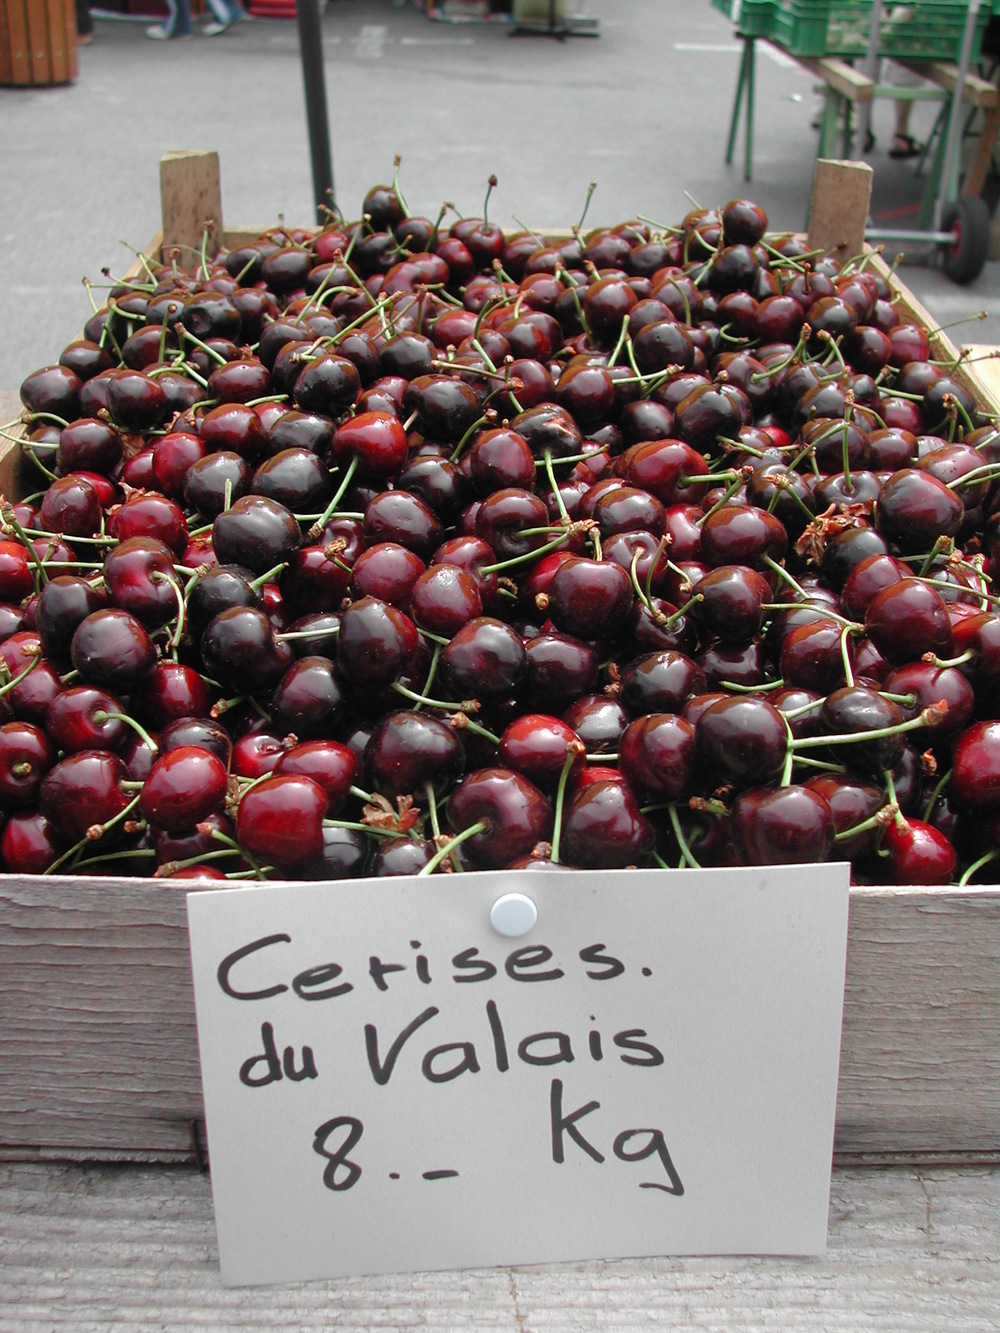 Valais cherries in the Vevey market